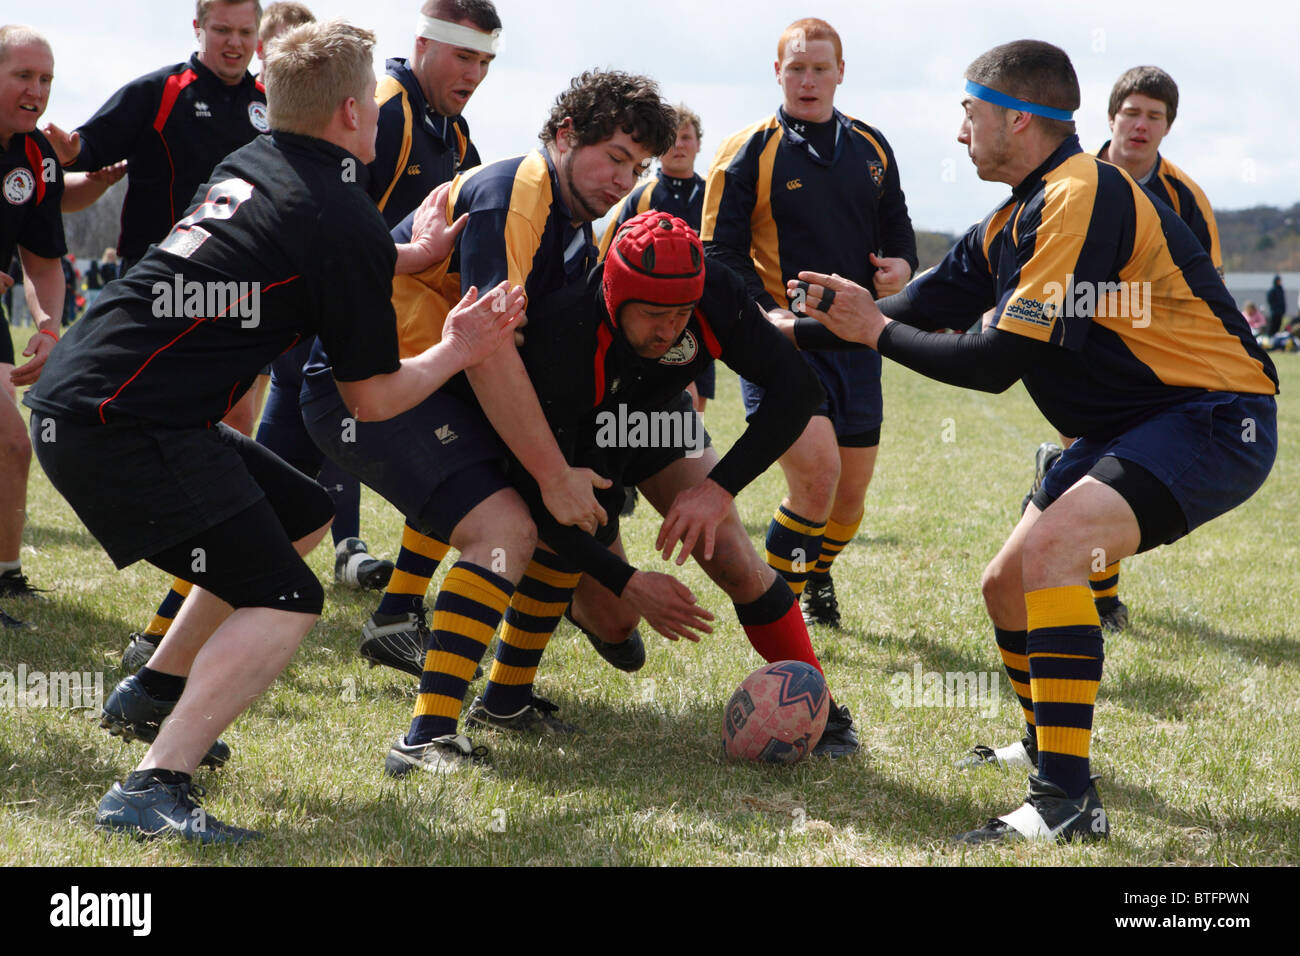 California University of Pennsylvania and West Virginia University players fight for the ball during a rugby match. - Stock Image